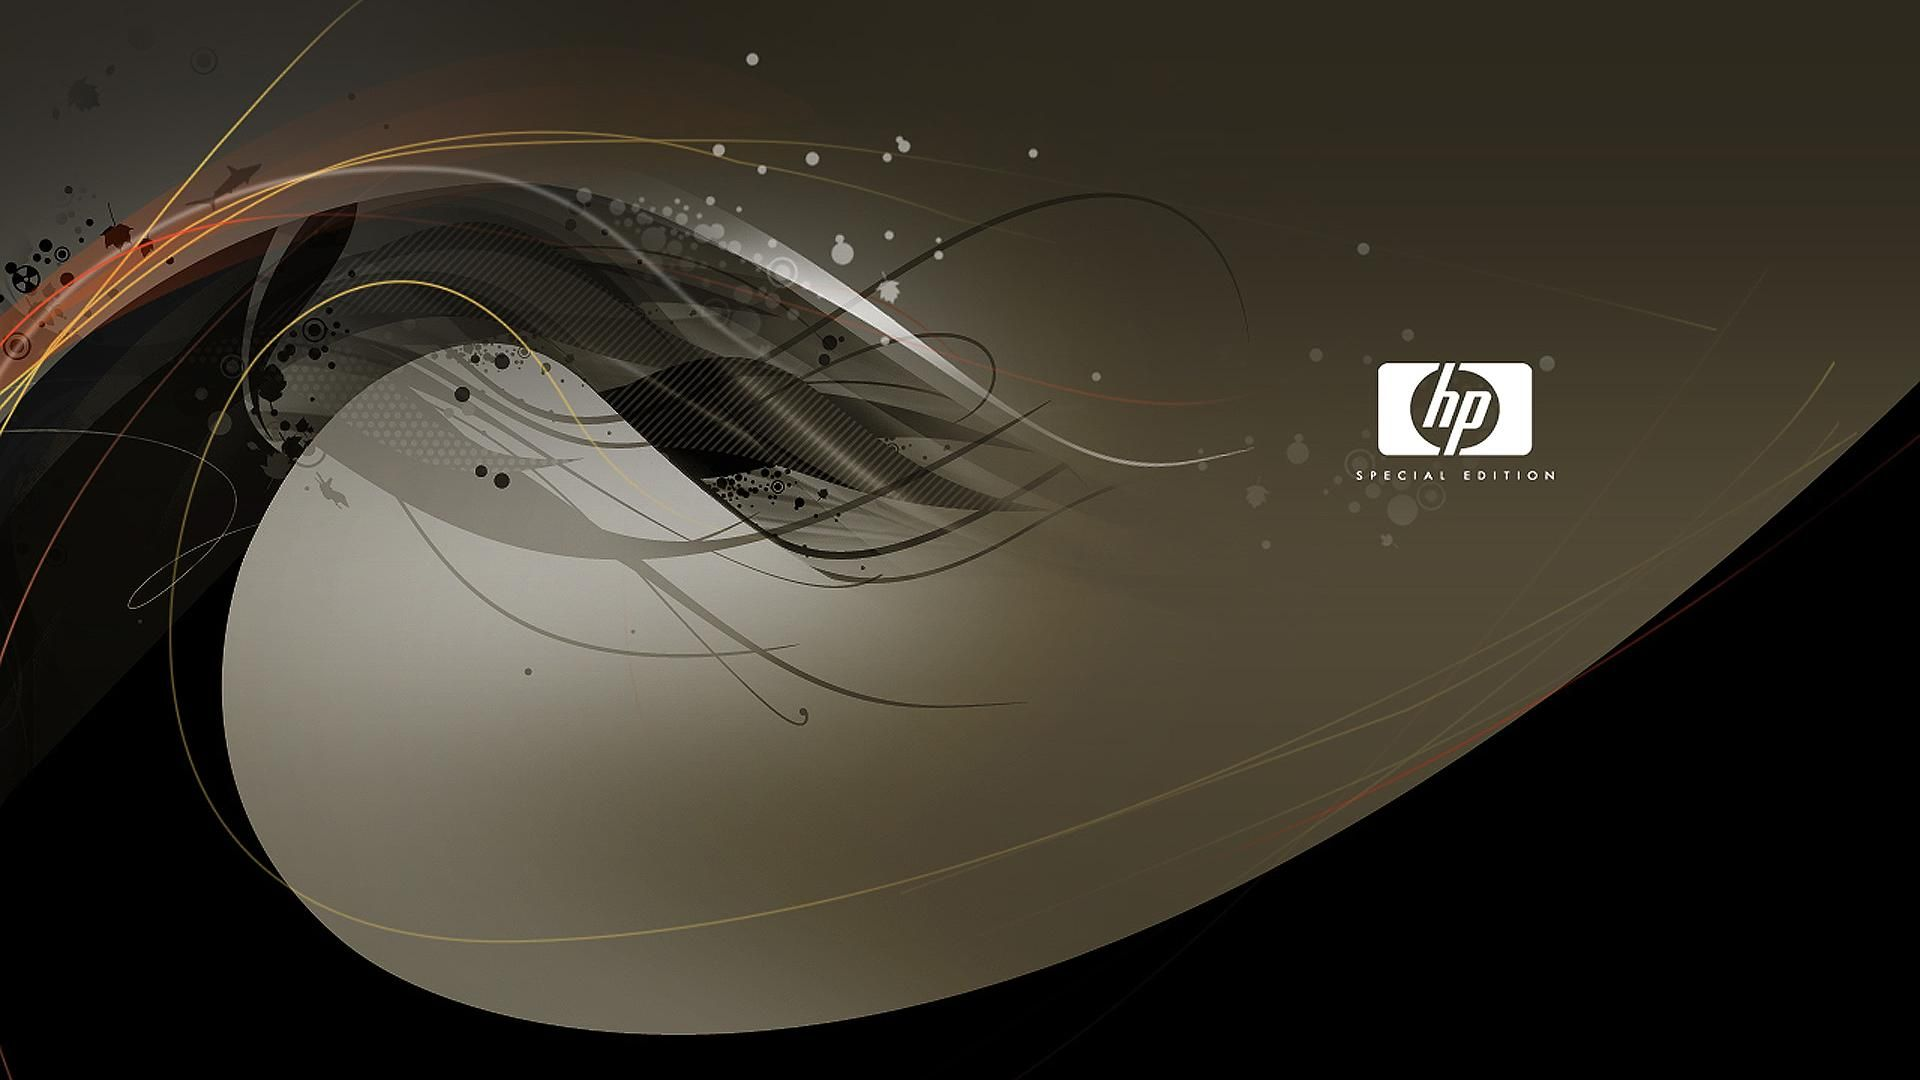 hp hd wallpaper widescreen 1920x1080 - wallpapersafari | images